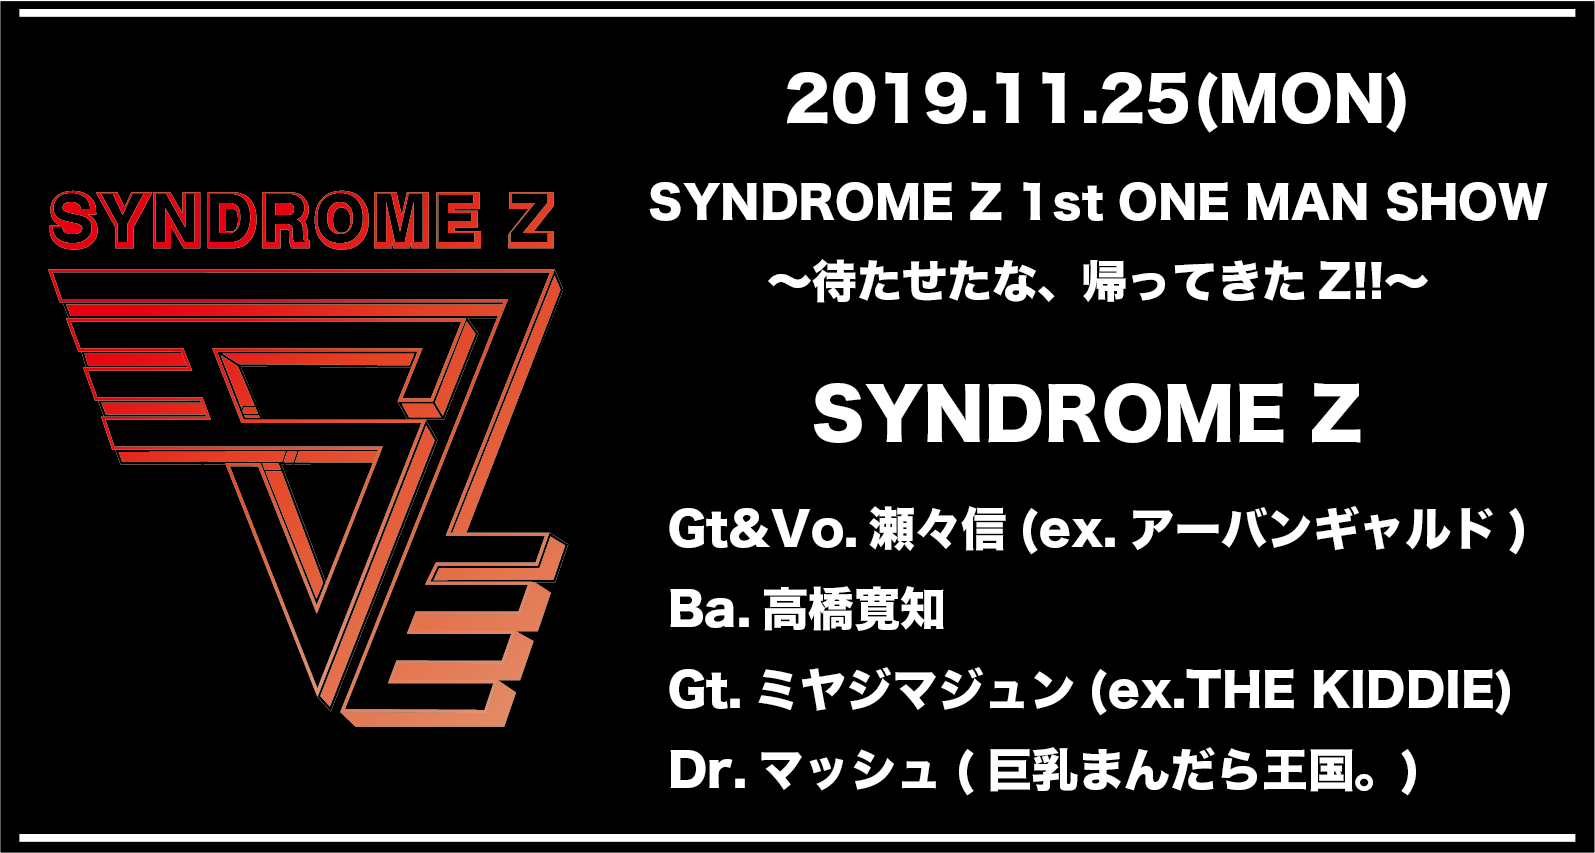 SYNDROME Z 1st ONE MAN SHOW〜待たせたな、帰ってきたZ!!〜